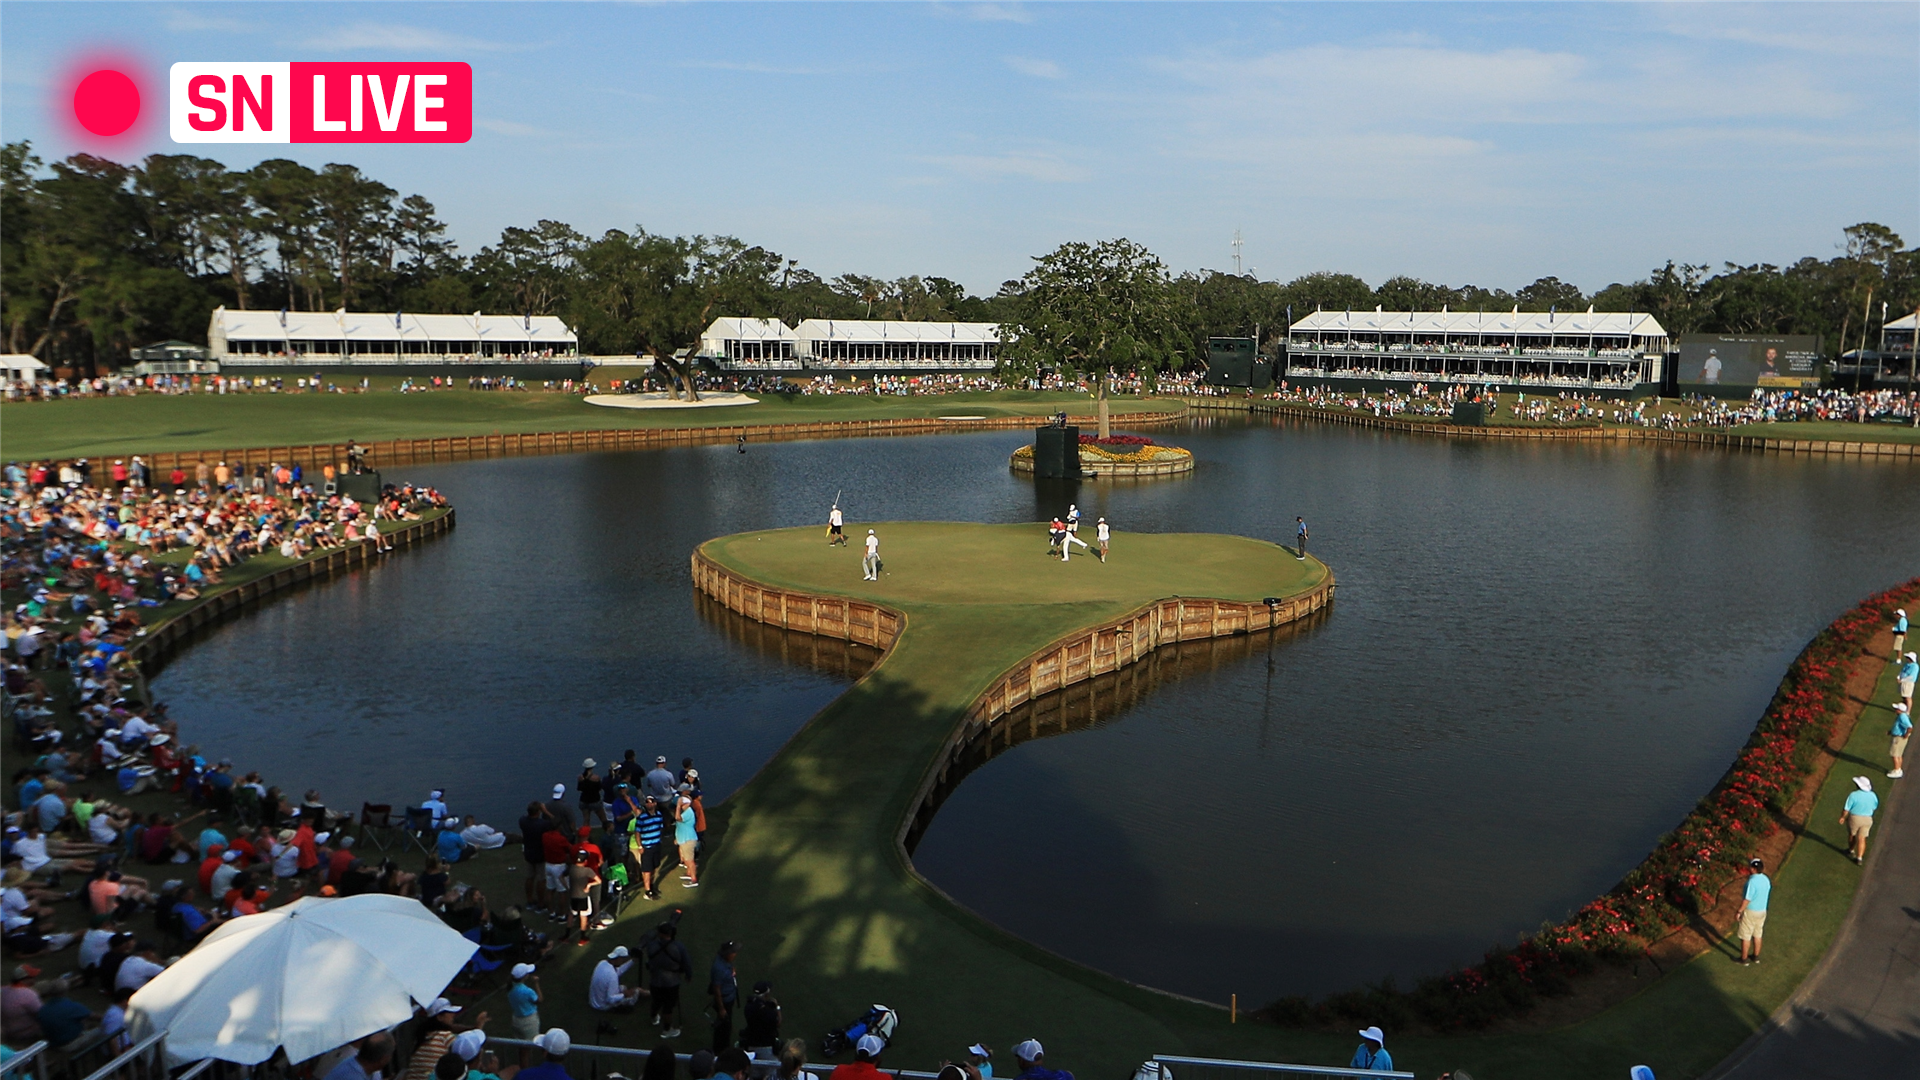 Players Championship leaderboard 2019: Live scores, Round 2 results from TPC Sawgrass